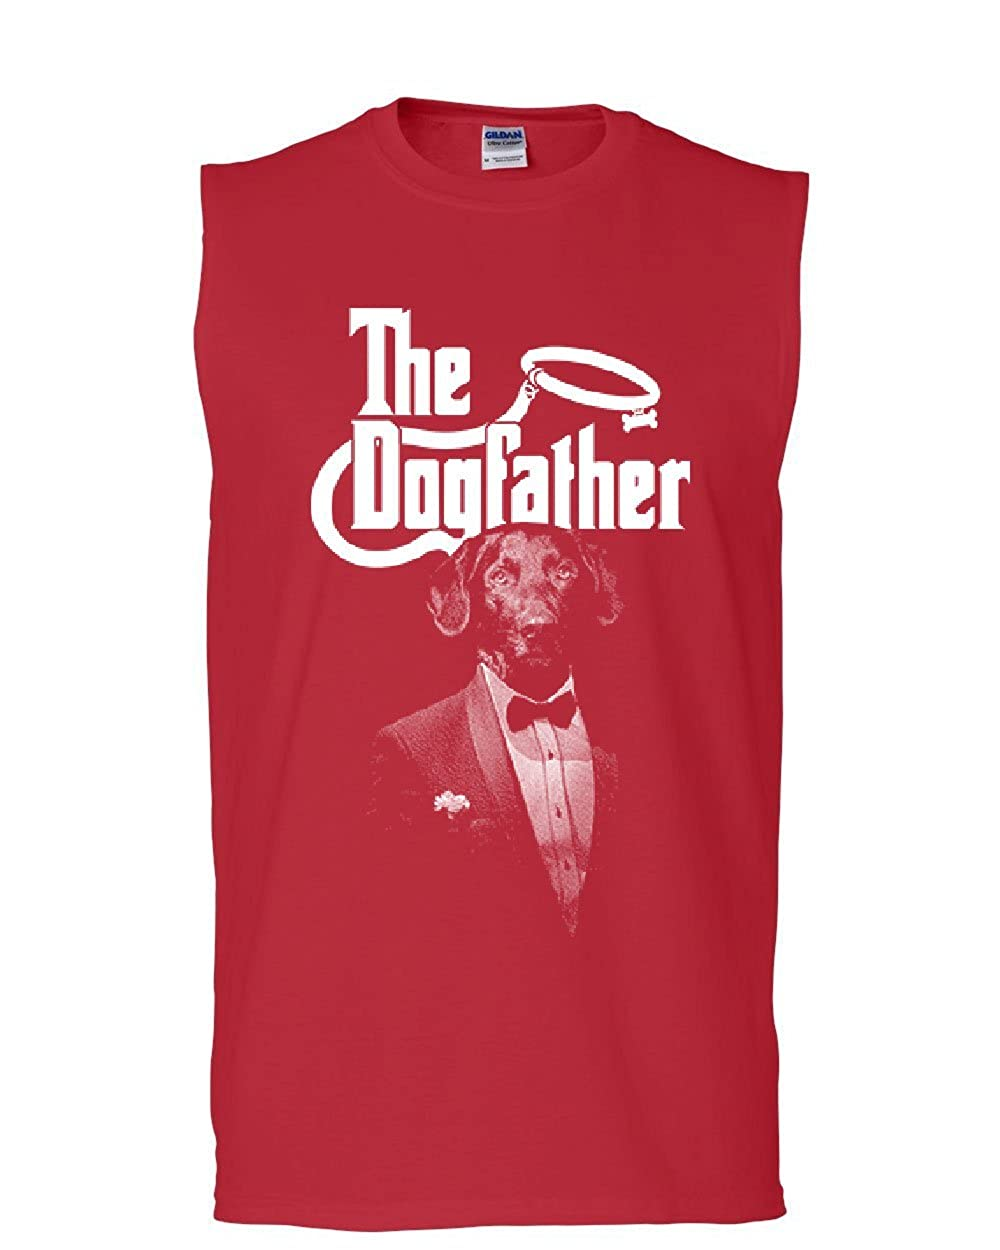 Tee Hunt The Dogfather Funny Muscle Shirt Parody Dog Lovers Pet Best